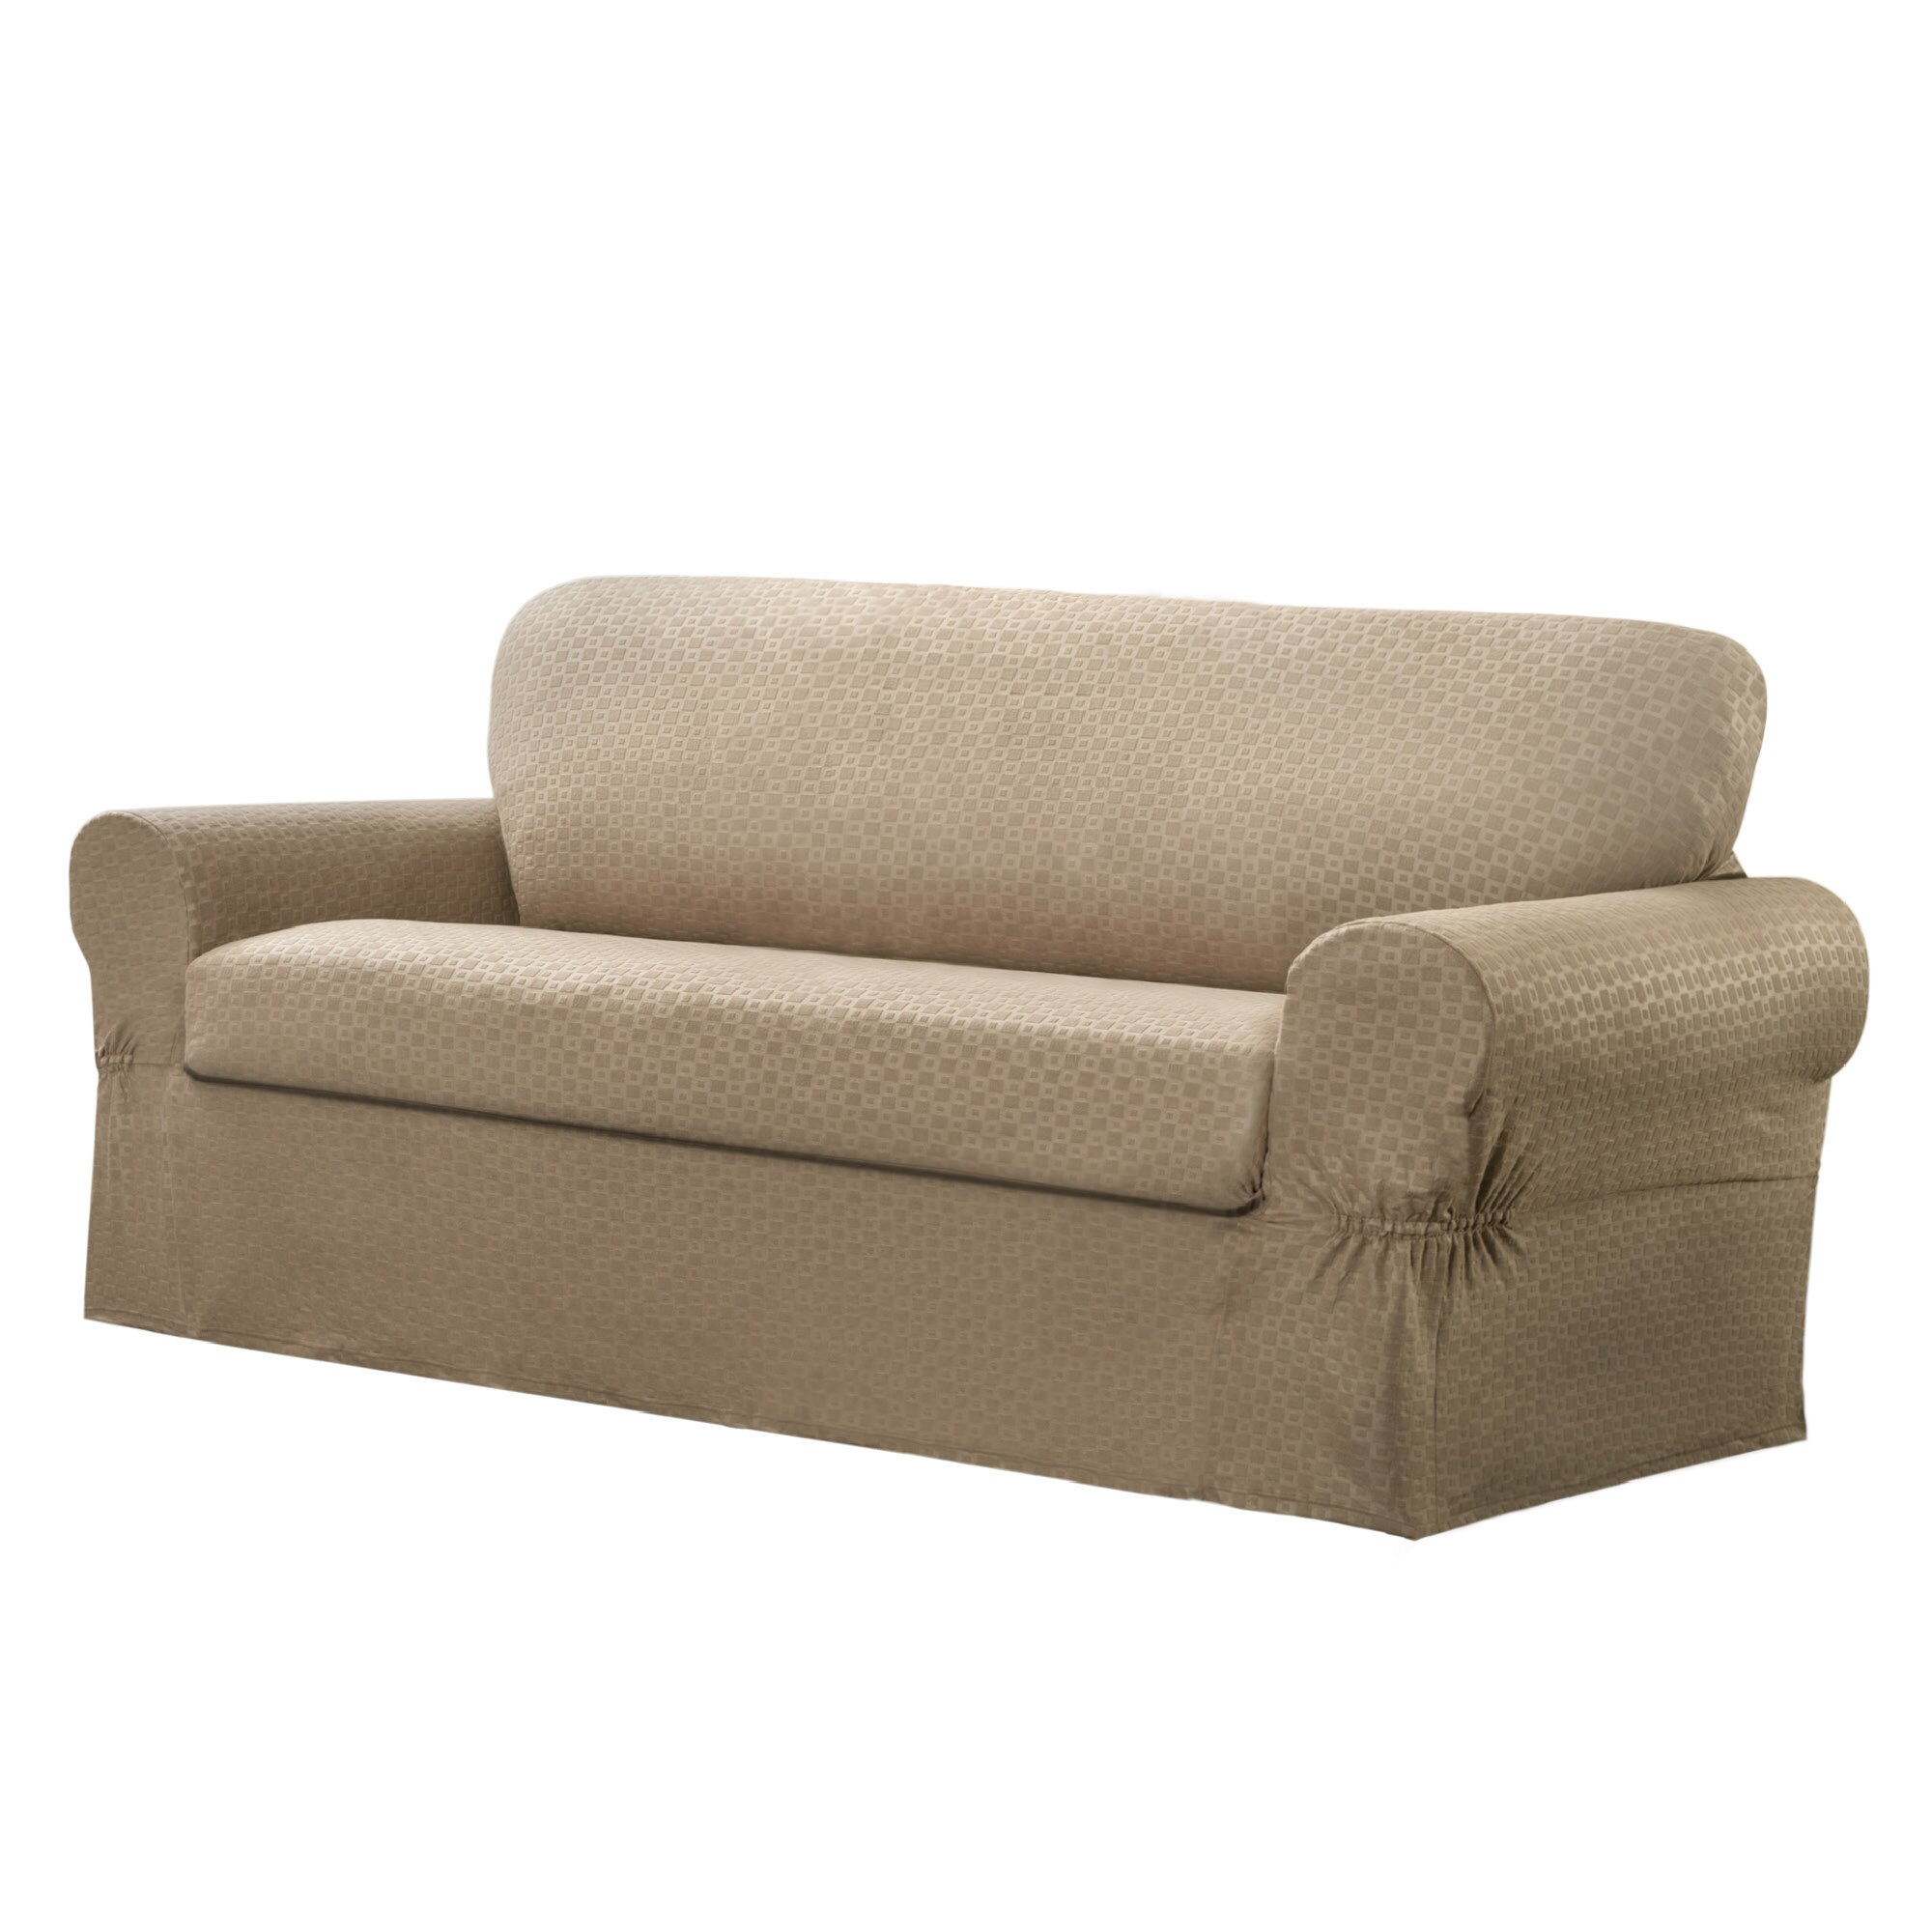 Maytex Conrad Stretch 2 Piece Loveseat Box Cushion Slipcover Set Reviews Wayfair